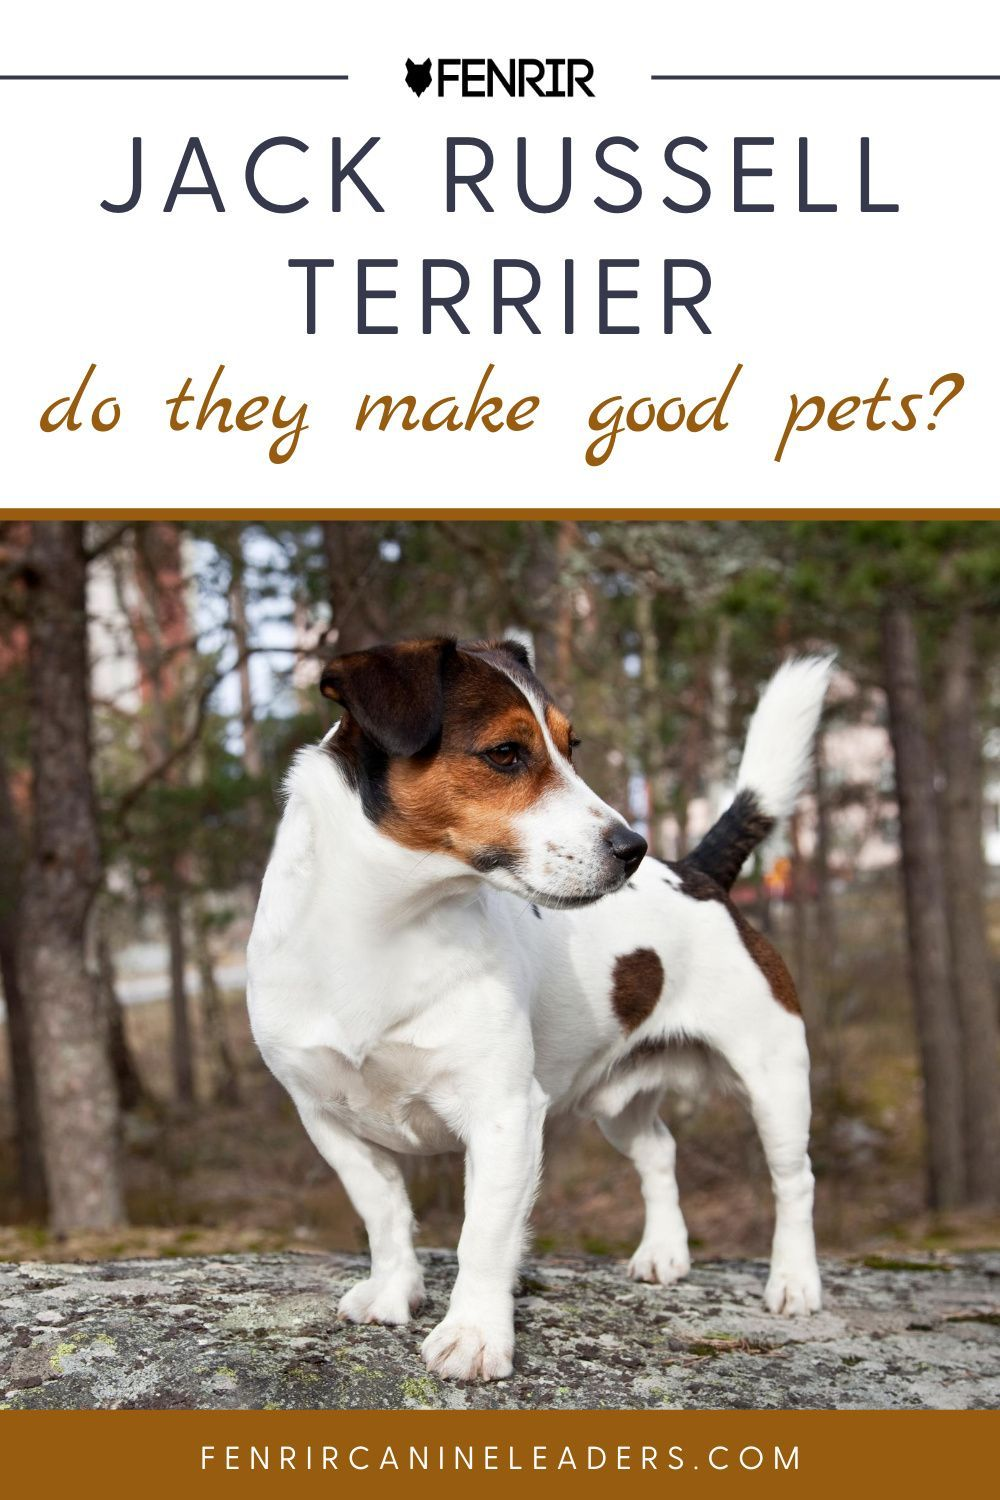 Everything You Need To Know About Owning A Jack Russell Terrier In 2020 Jack Russell Terrier Terrier Dog Breeds Jack Russell